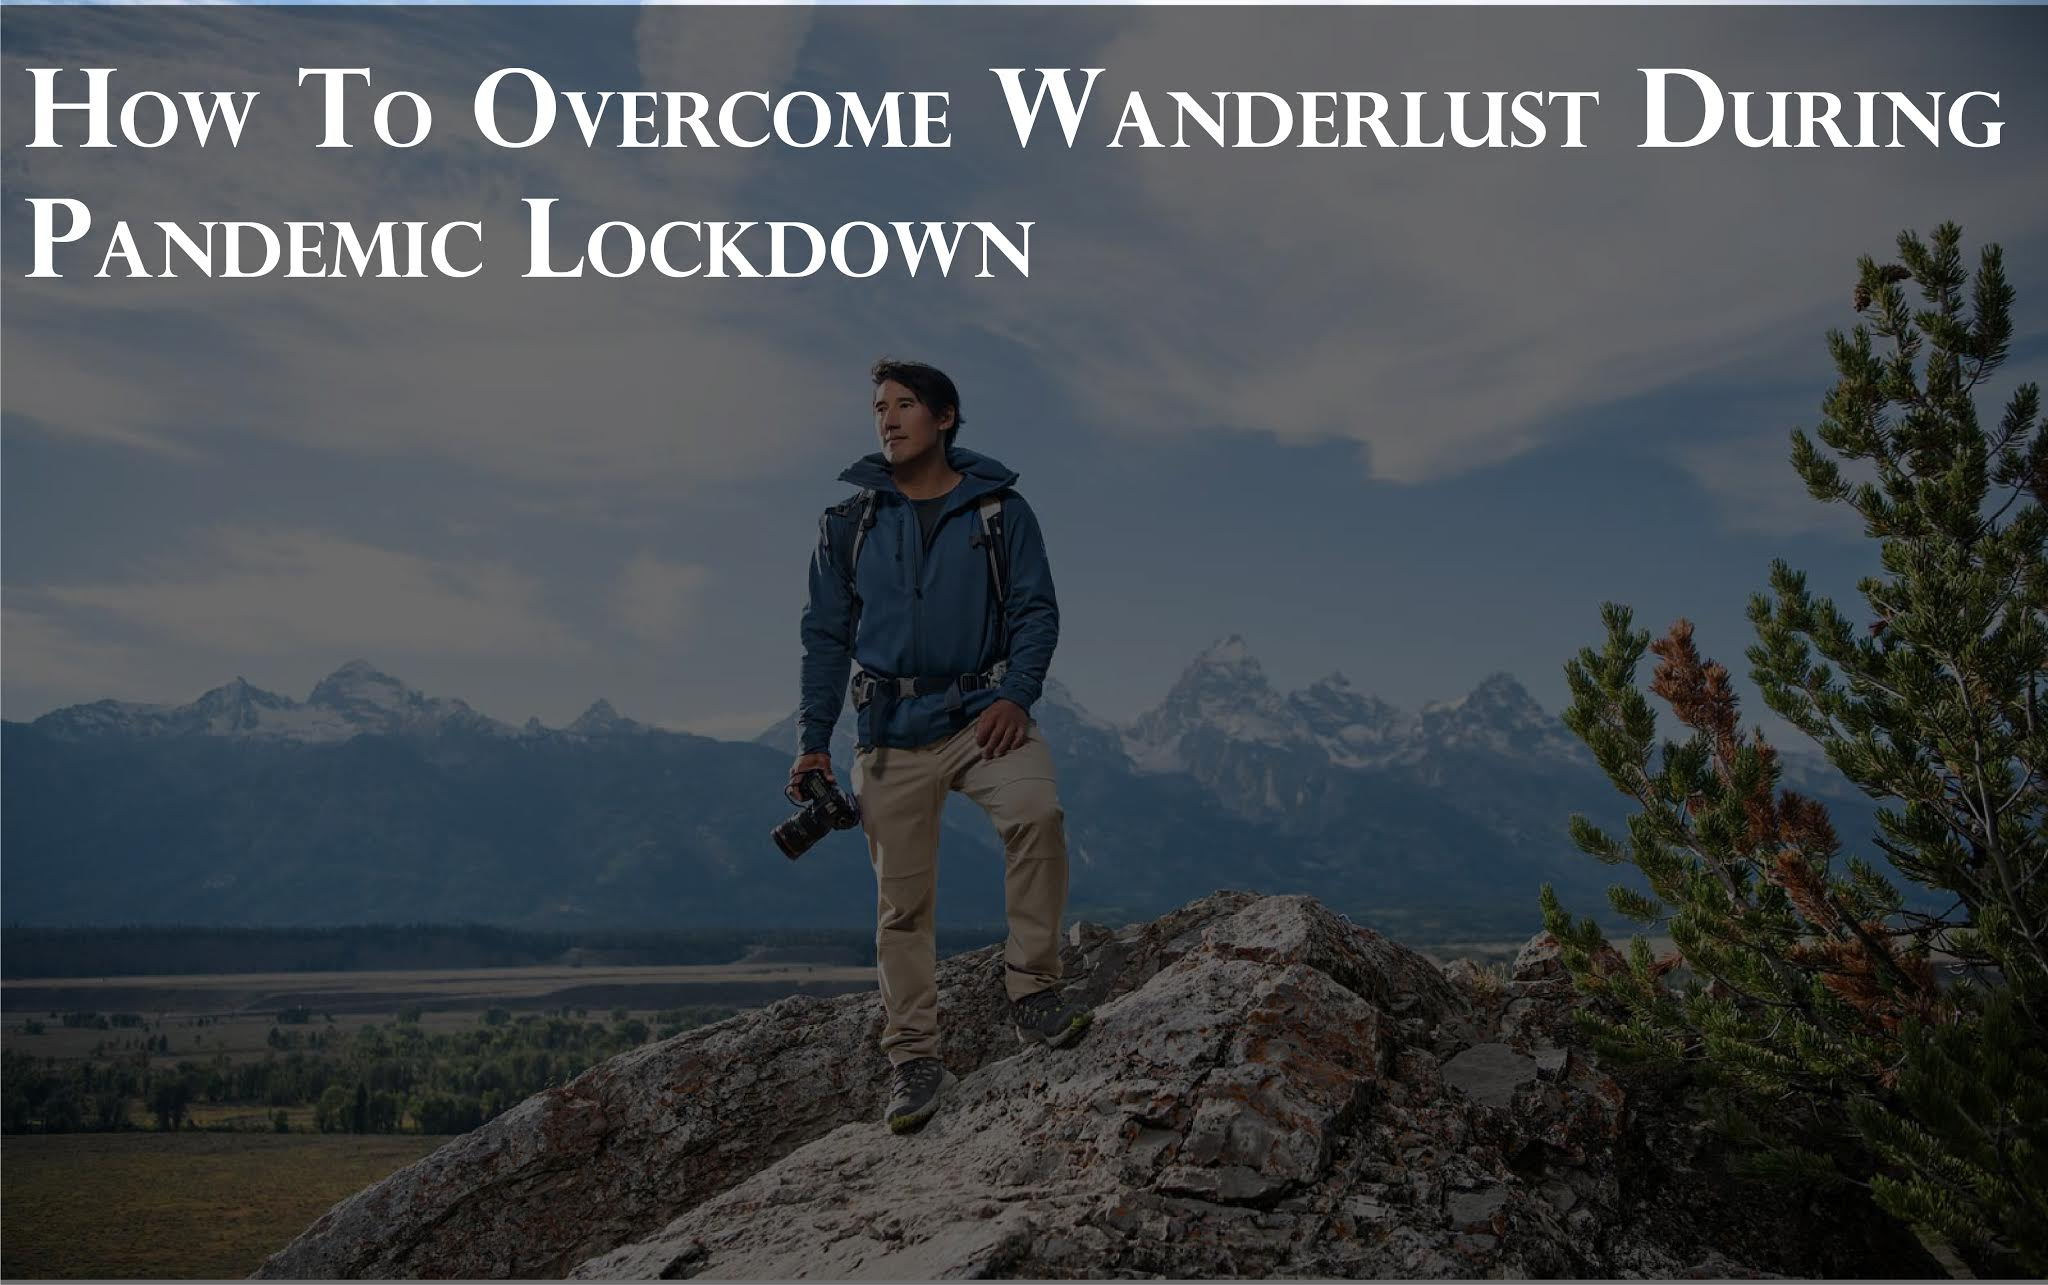 How to Overcome Wanderlust